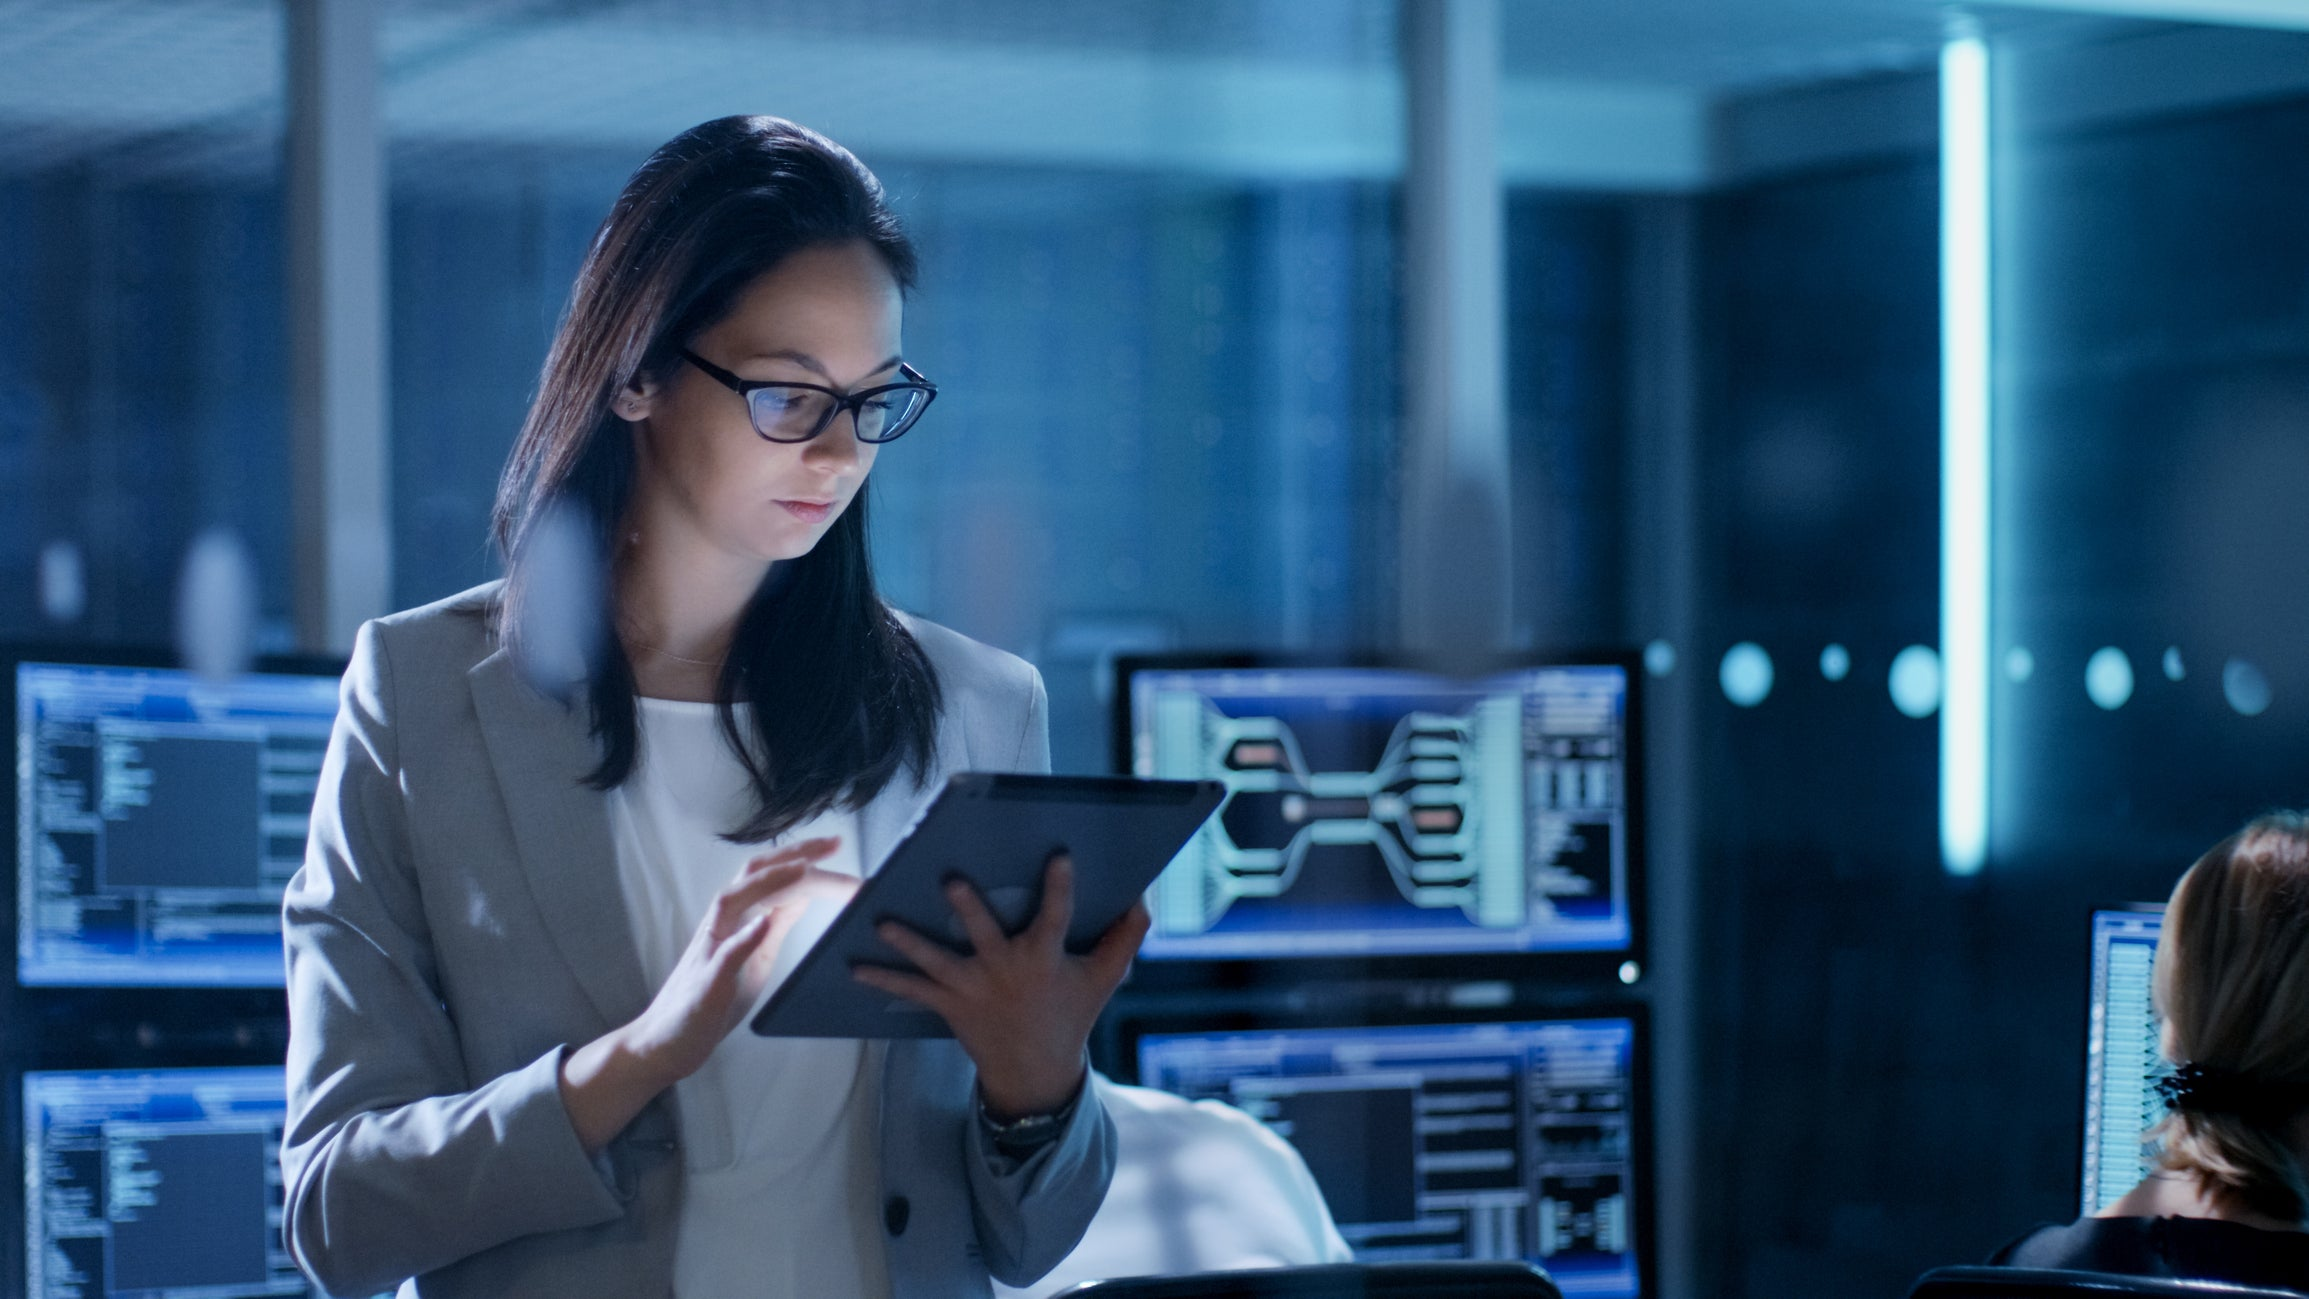 Woman in server room with tablet in her hand